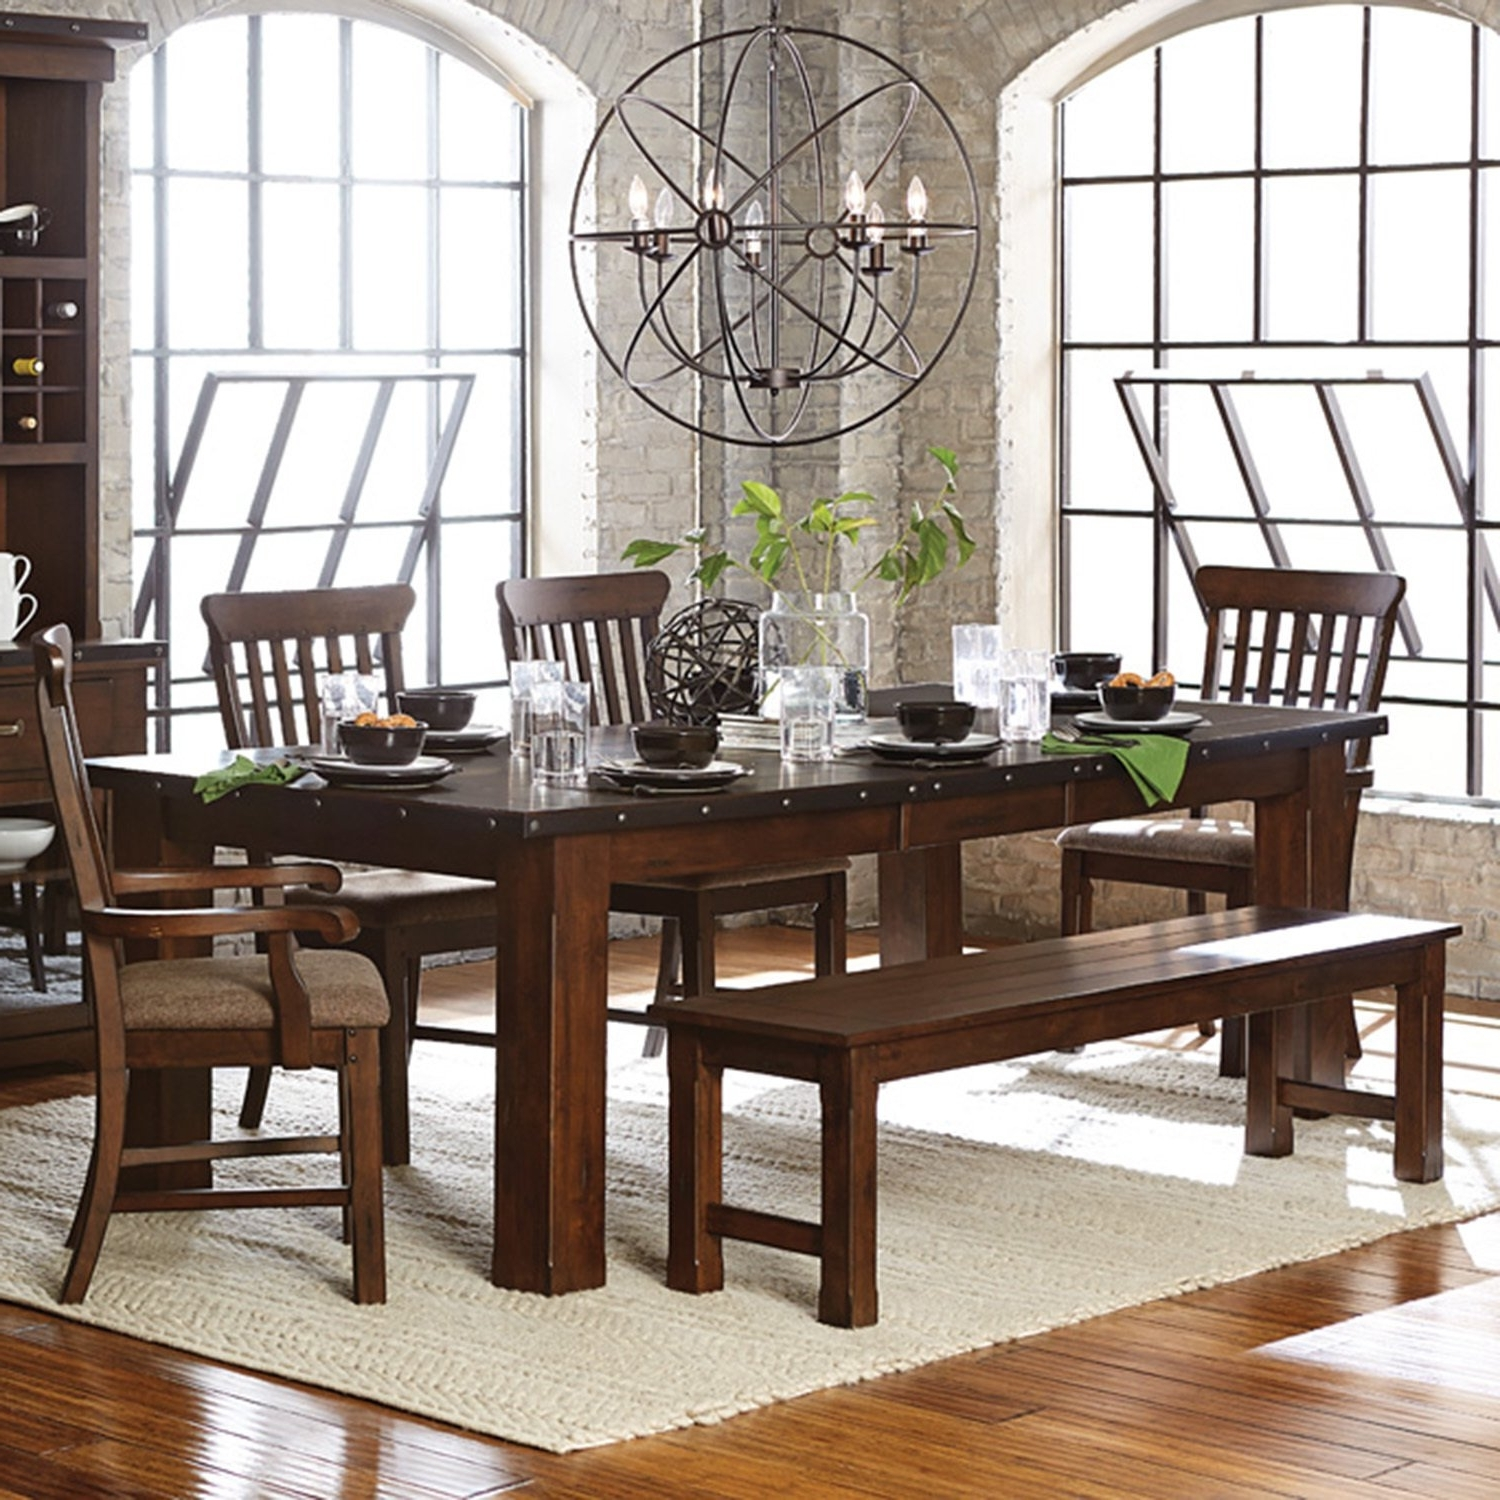 Most Recent Shop Norwood Antique Oak Finish Extending Table Dining Set – Free For Norwood 7 Piece Rectangular Extension Dining Sets With Bench & Uph Side Chairs (View 7 of 25)